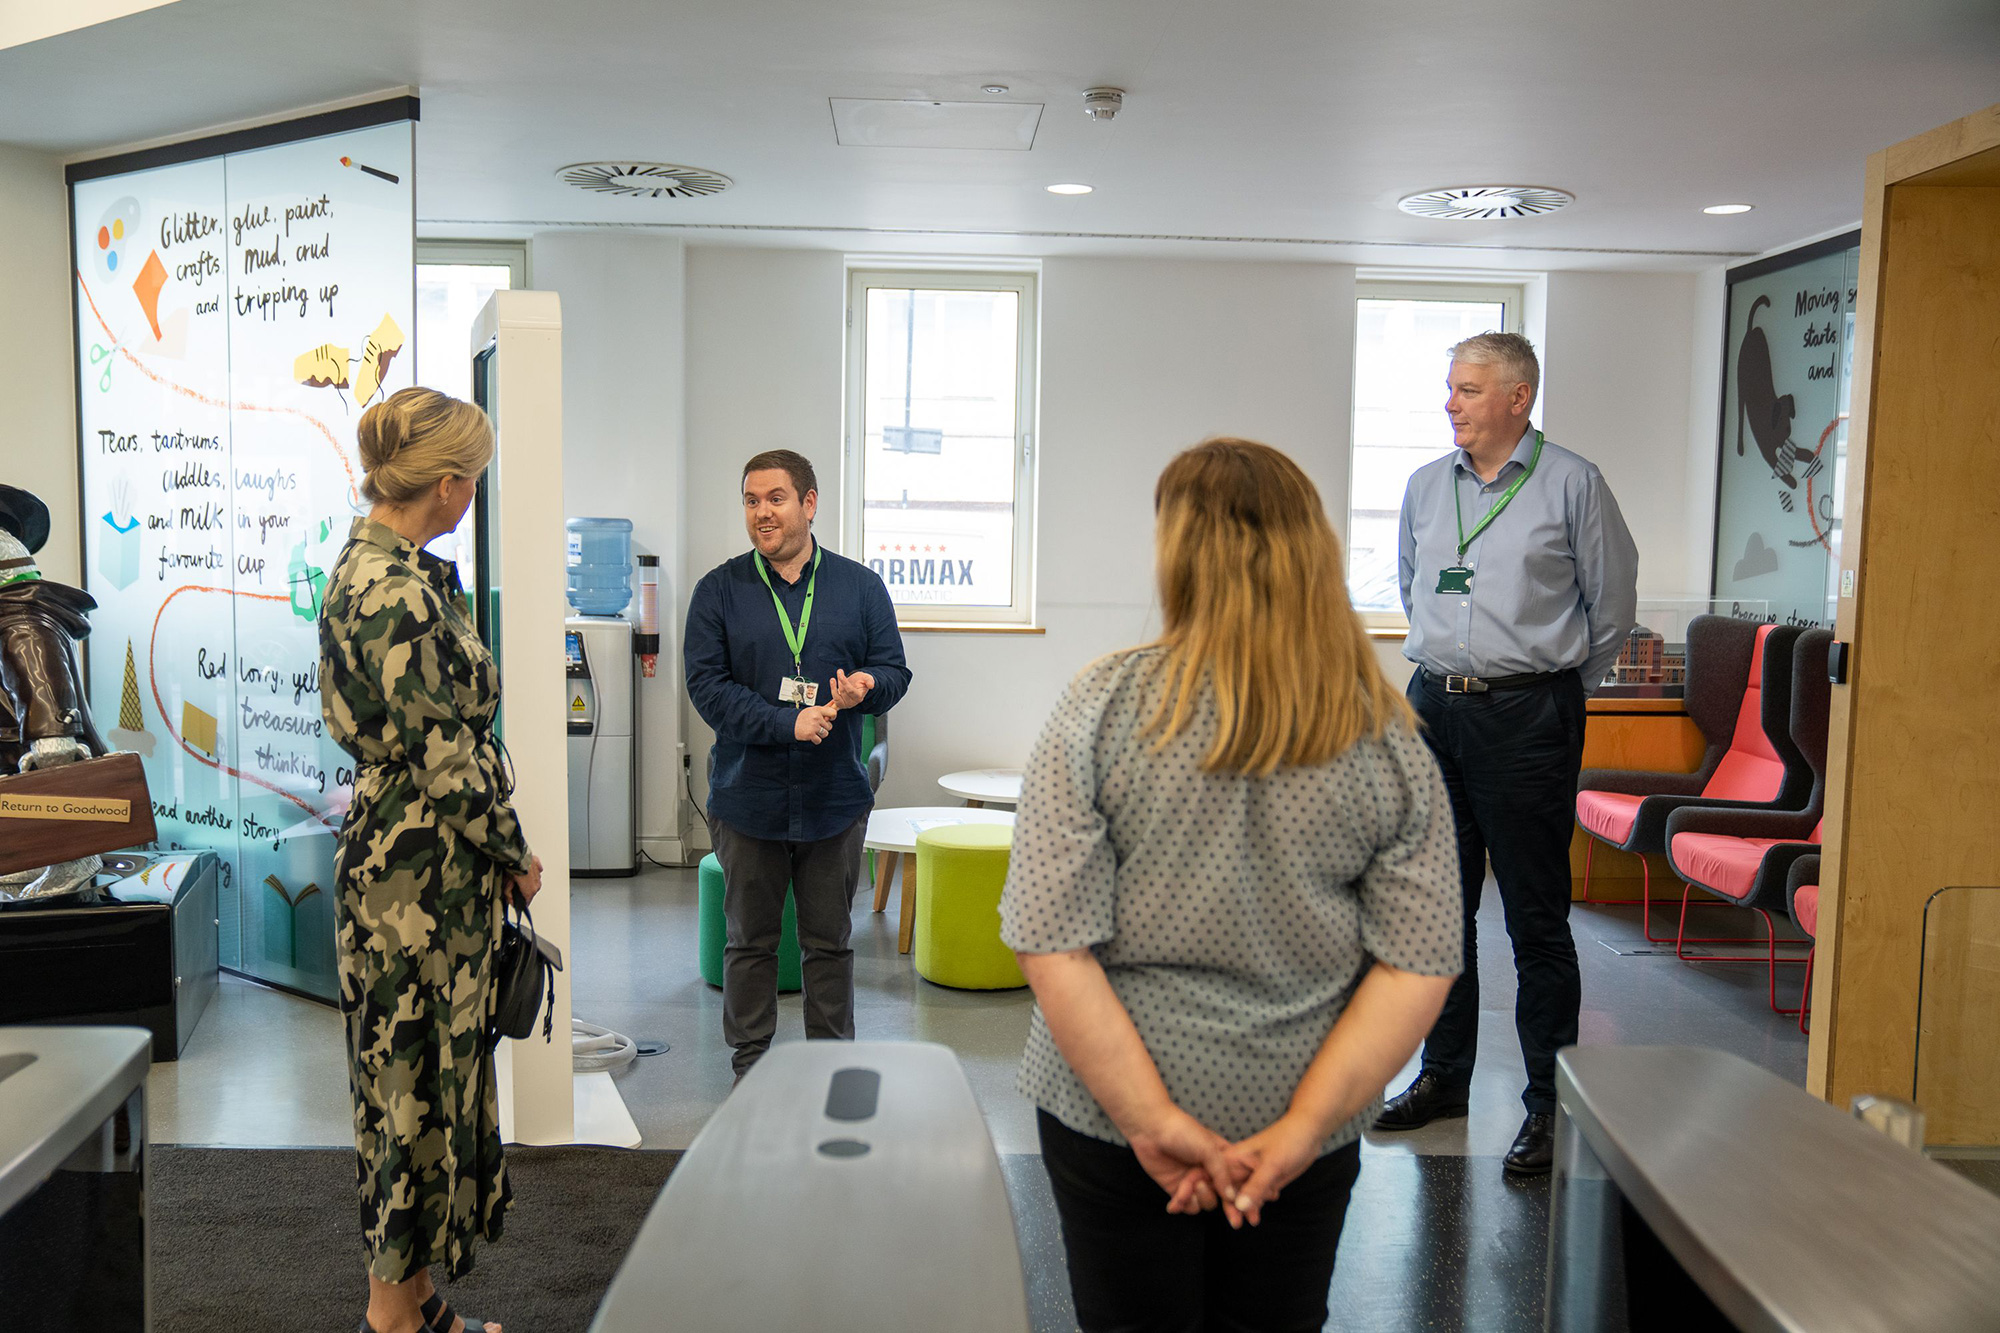 Sophie Countess of Wessex joins a counselling shift at Childline, NSPCC HQ, London, UK - 17 Jun 2020